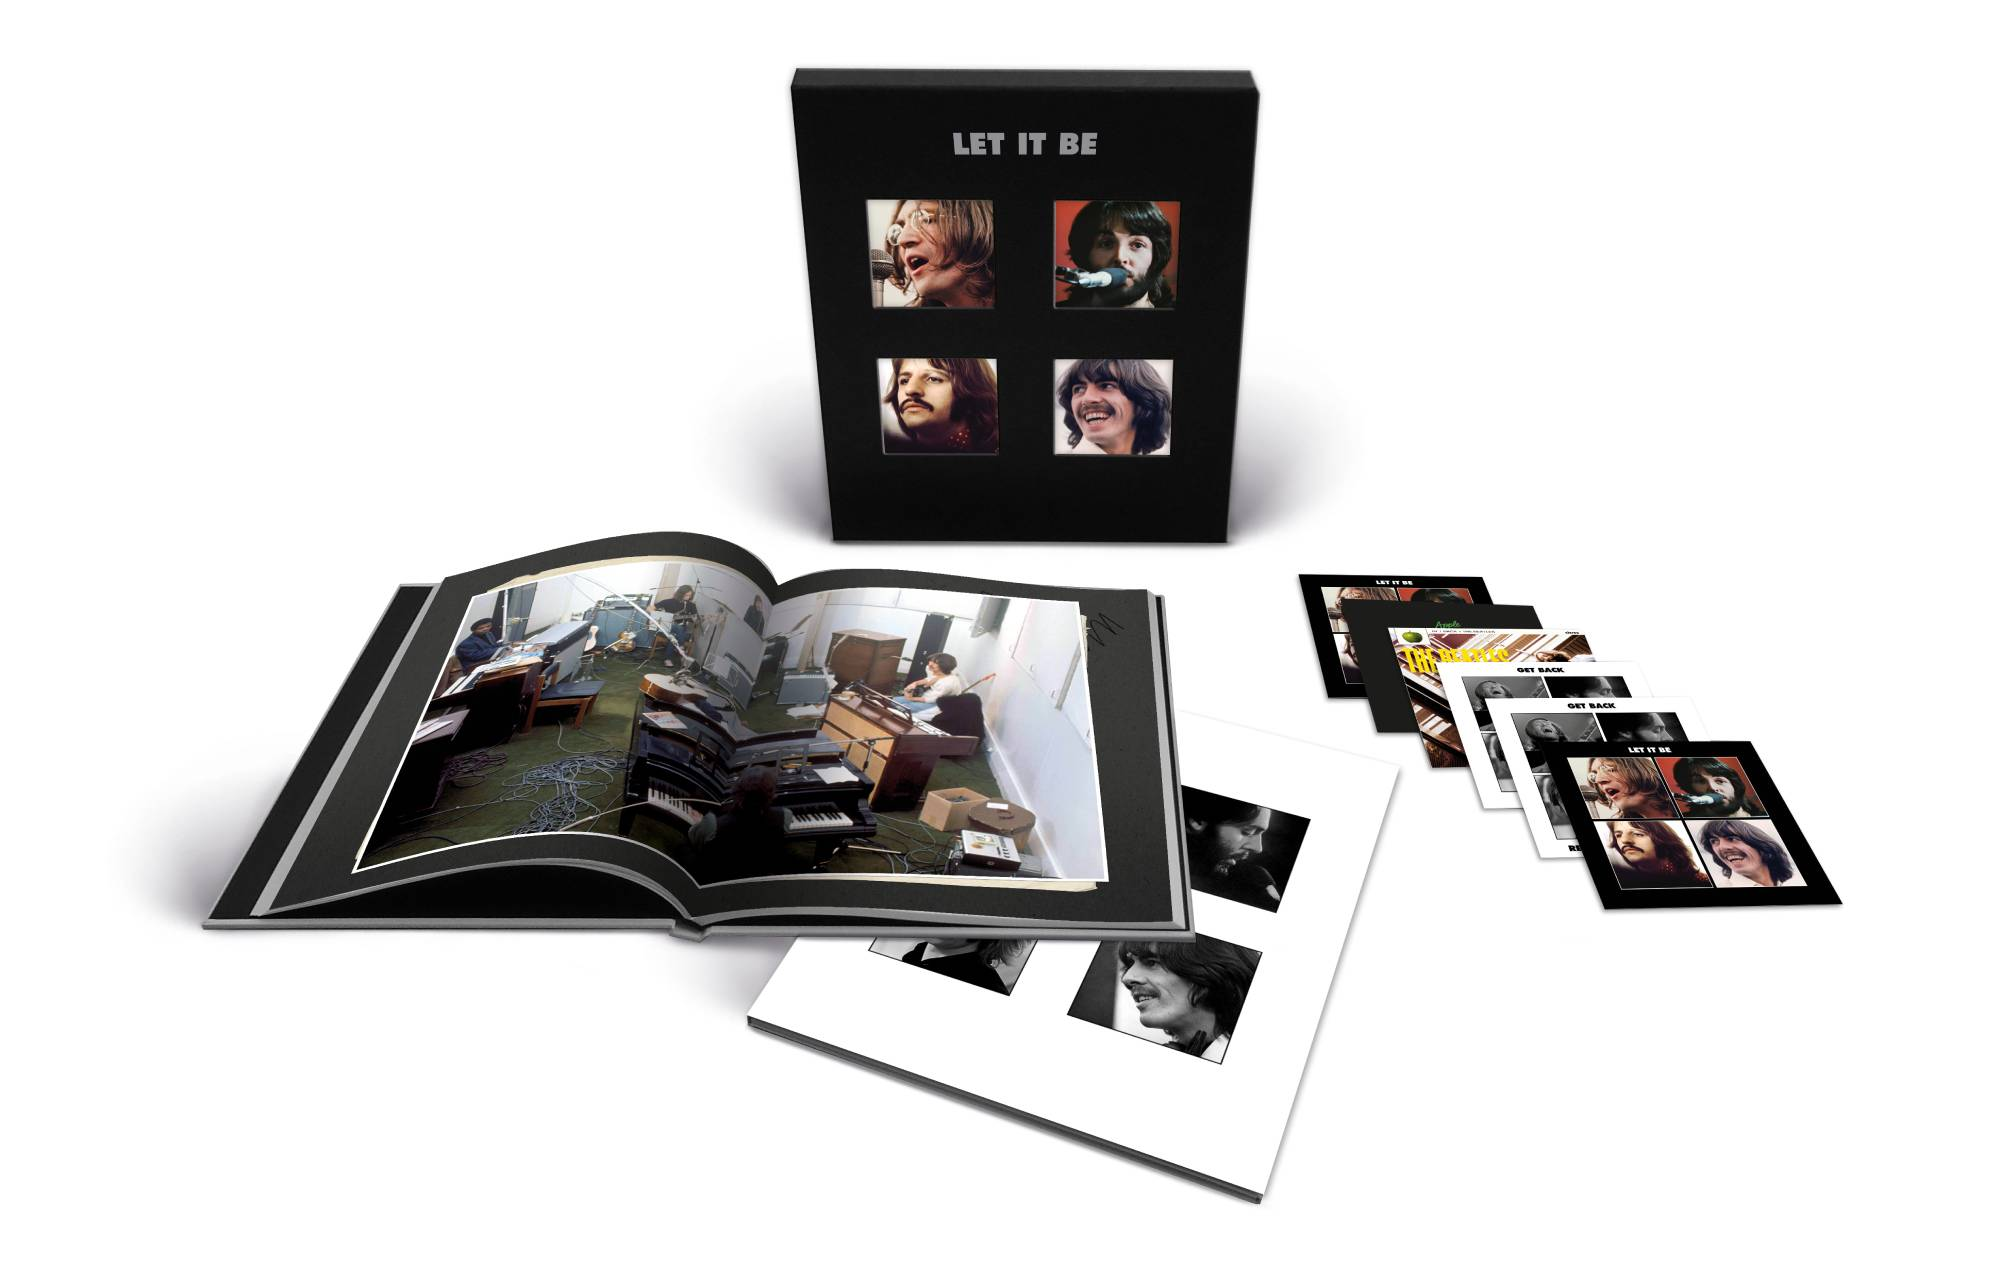 The Beatles' Let It Be Gets Deluxe Reissue With Previously Unreleased Mixes And Outtakes